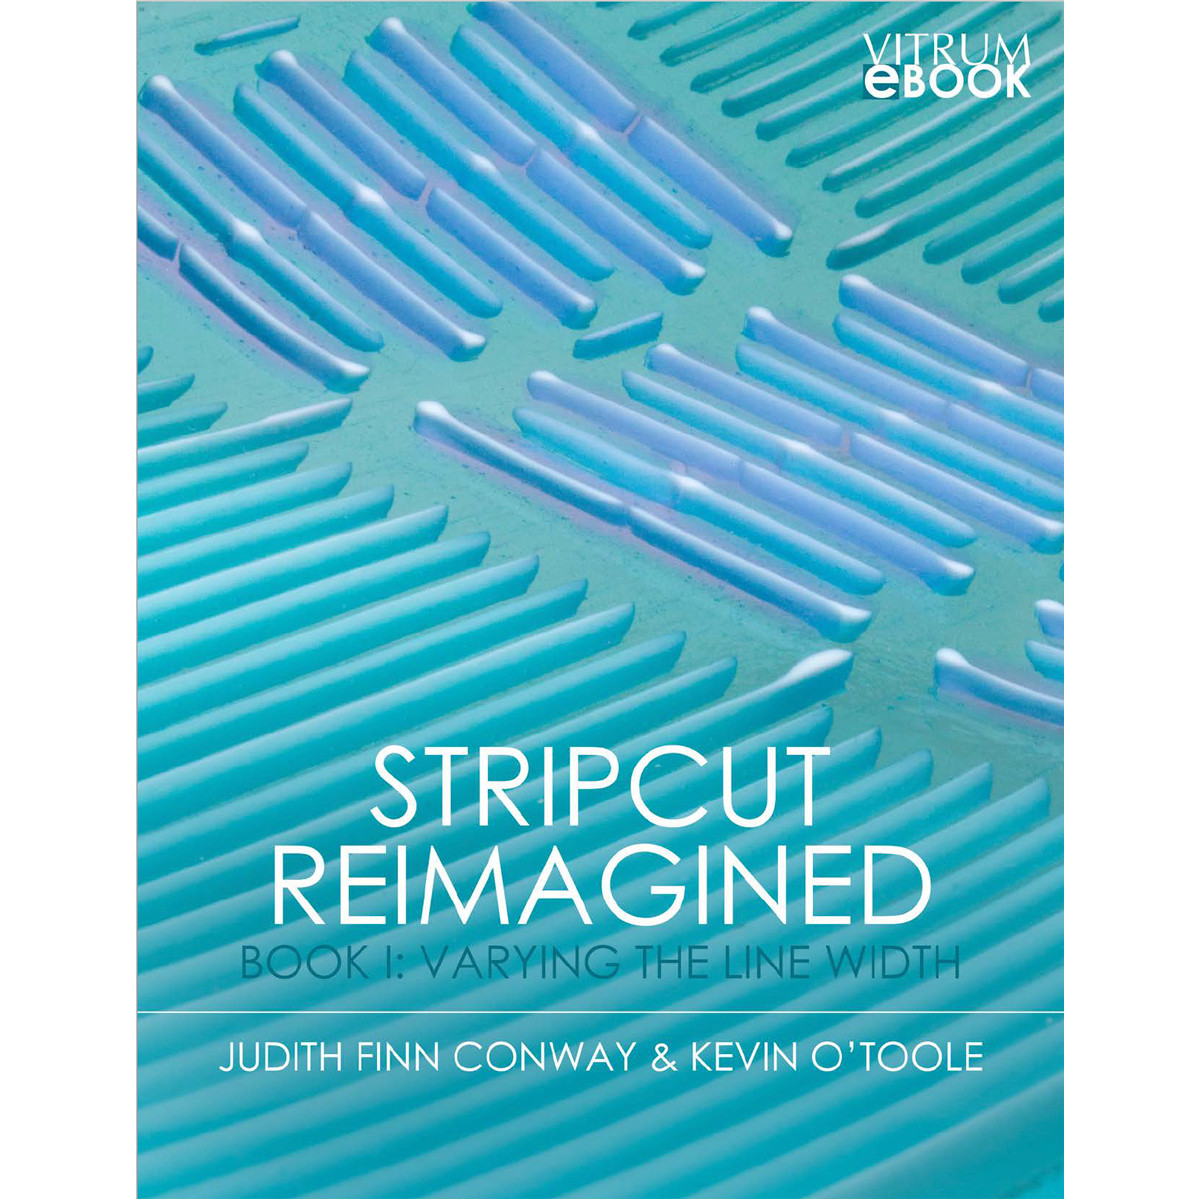 Ebook | Varying the Line Width - Stripcut Reimagined Book 1